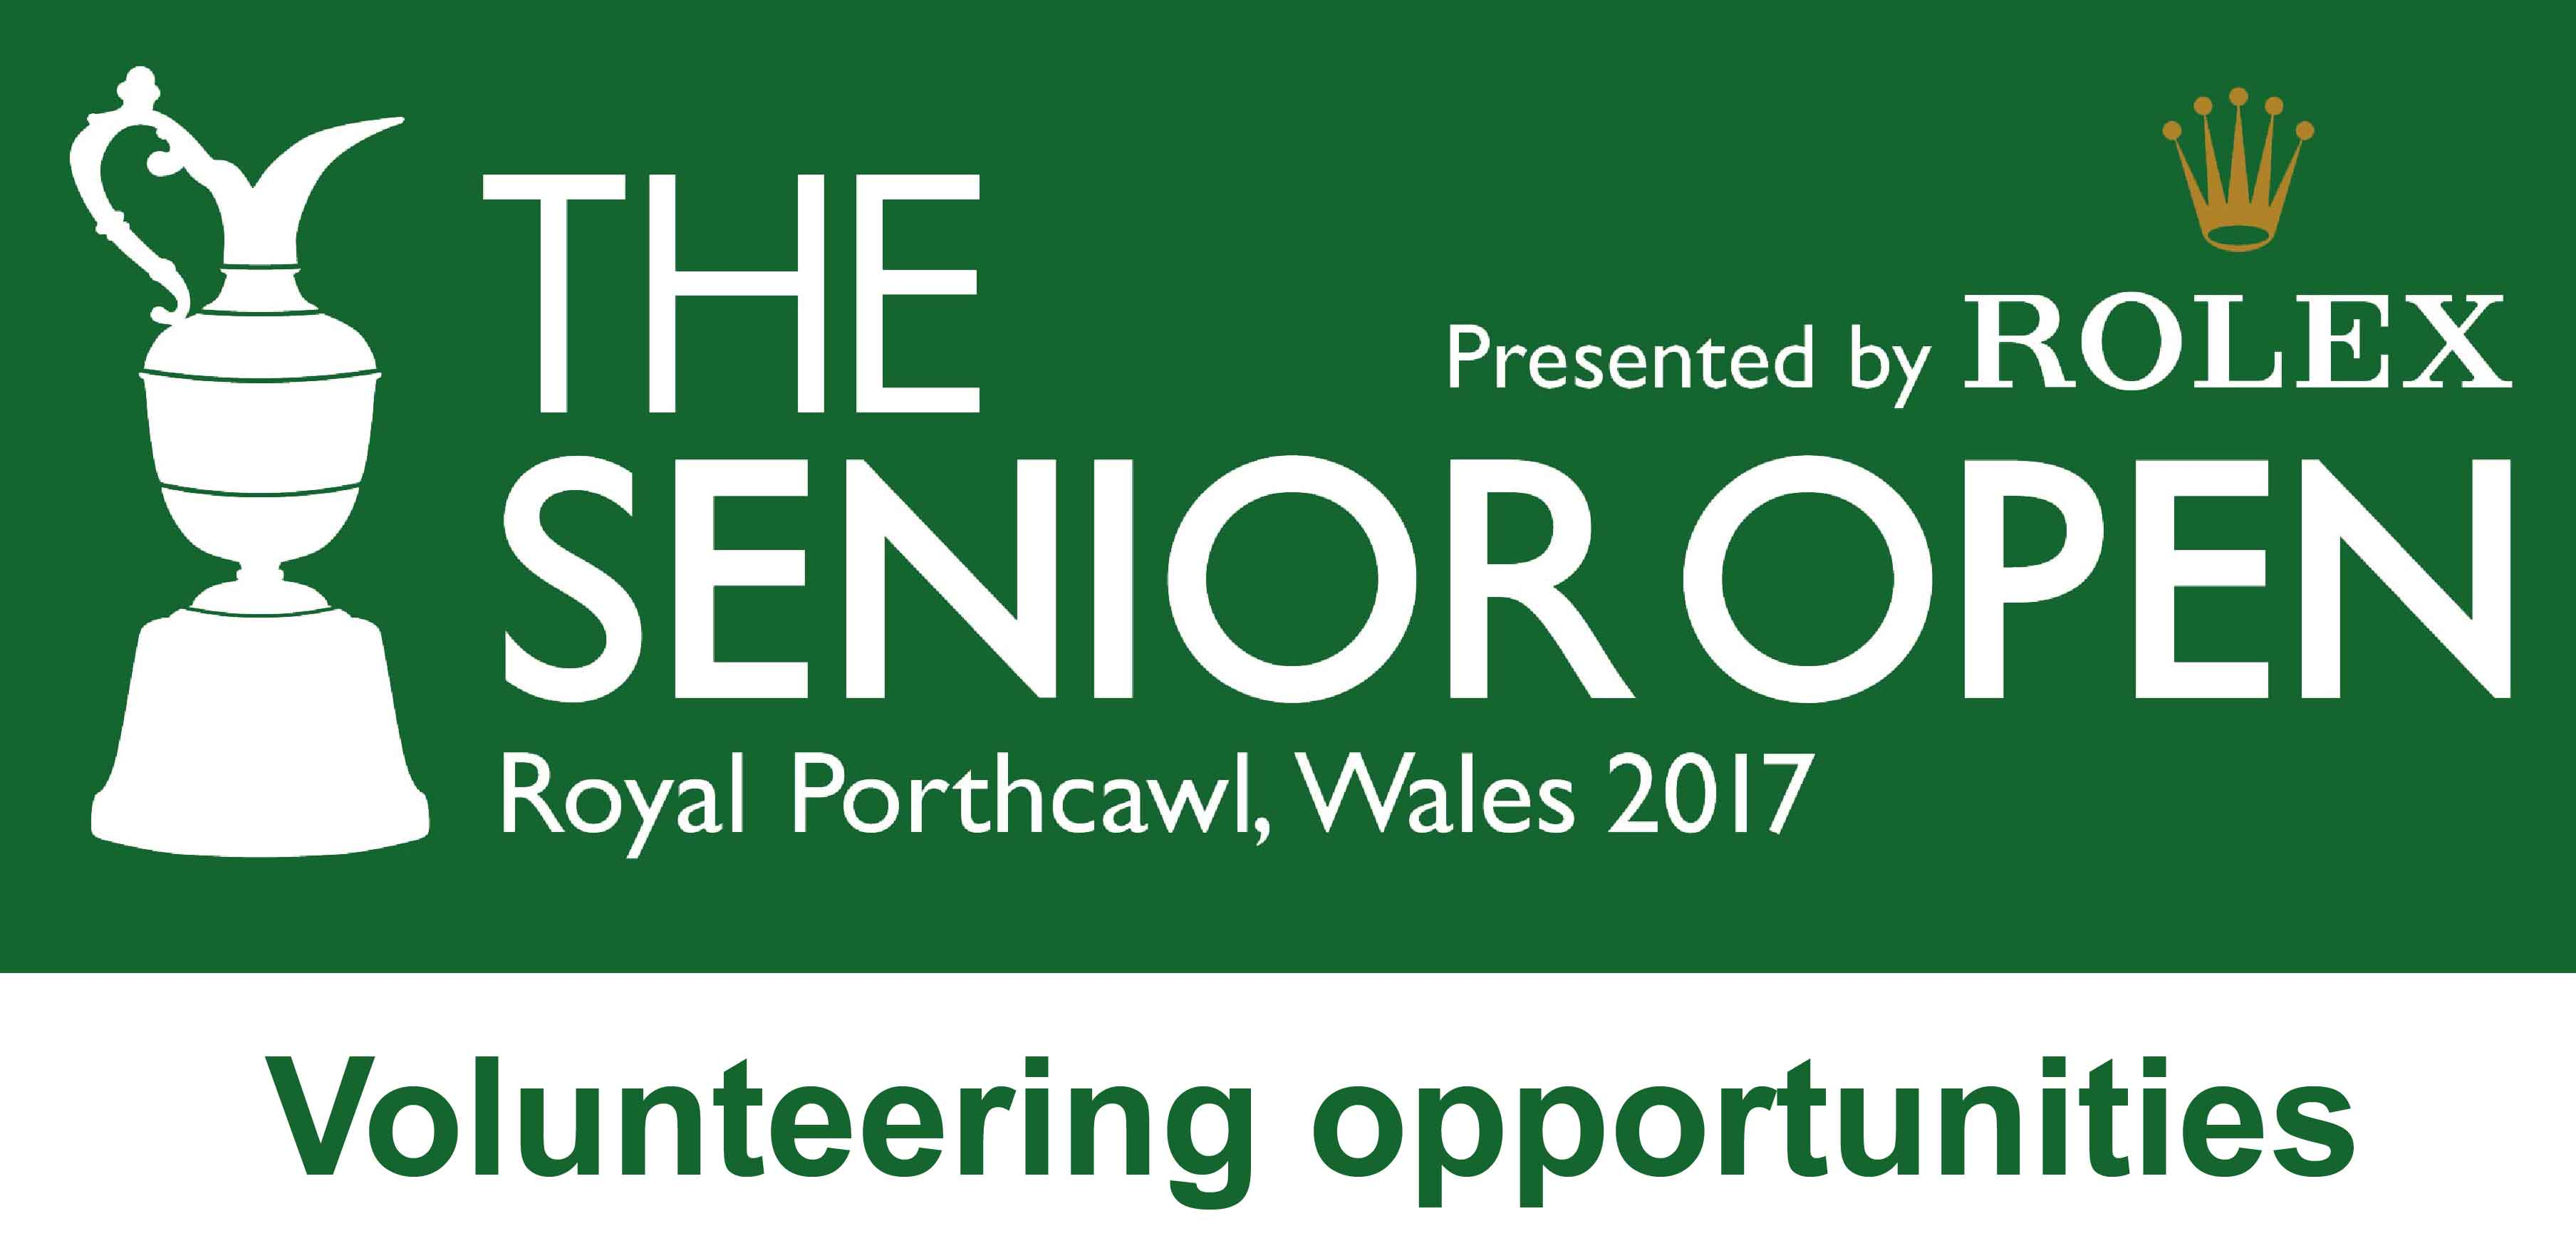 Volunteer at the Senior Open Championship Presented by Rolex